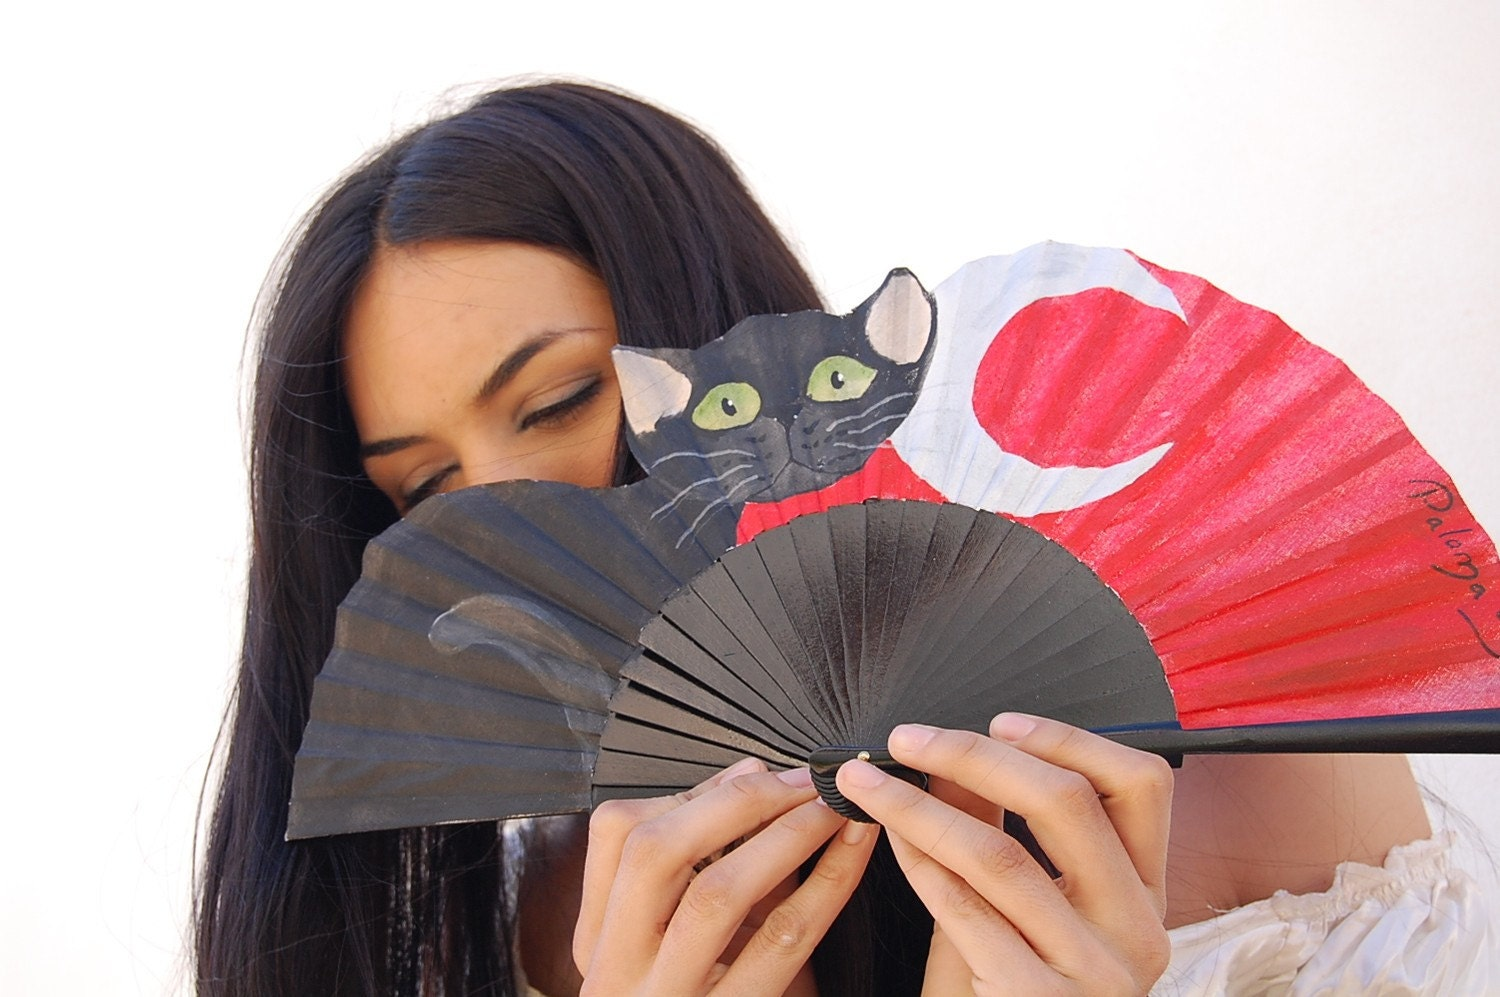 Naif Cat meaw. Fan hand painted. A